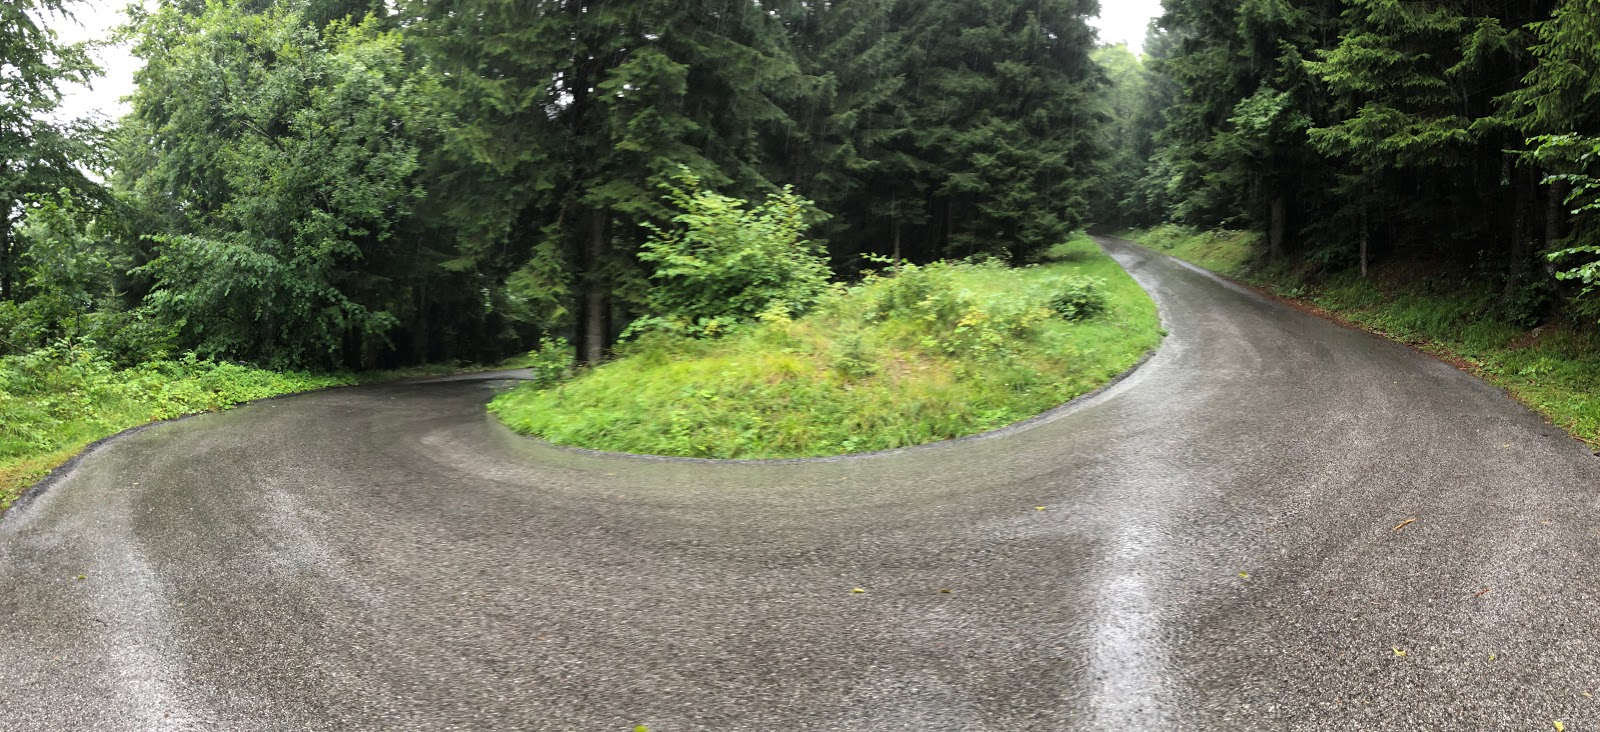 Cycling Passo della Forcella - hairpin turn